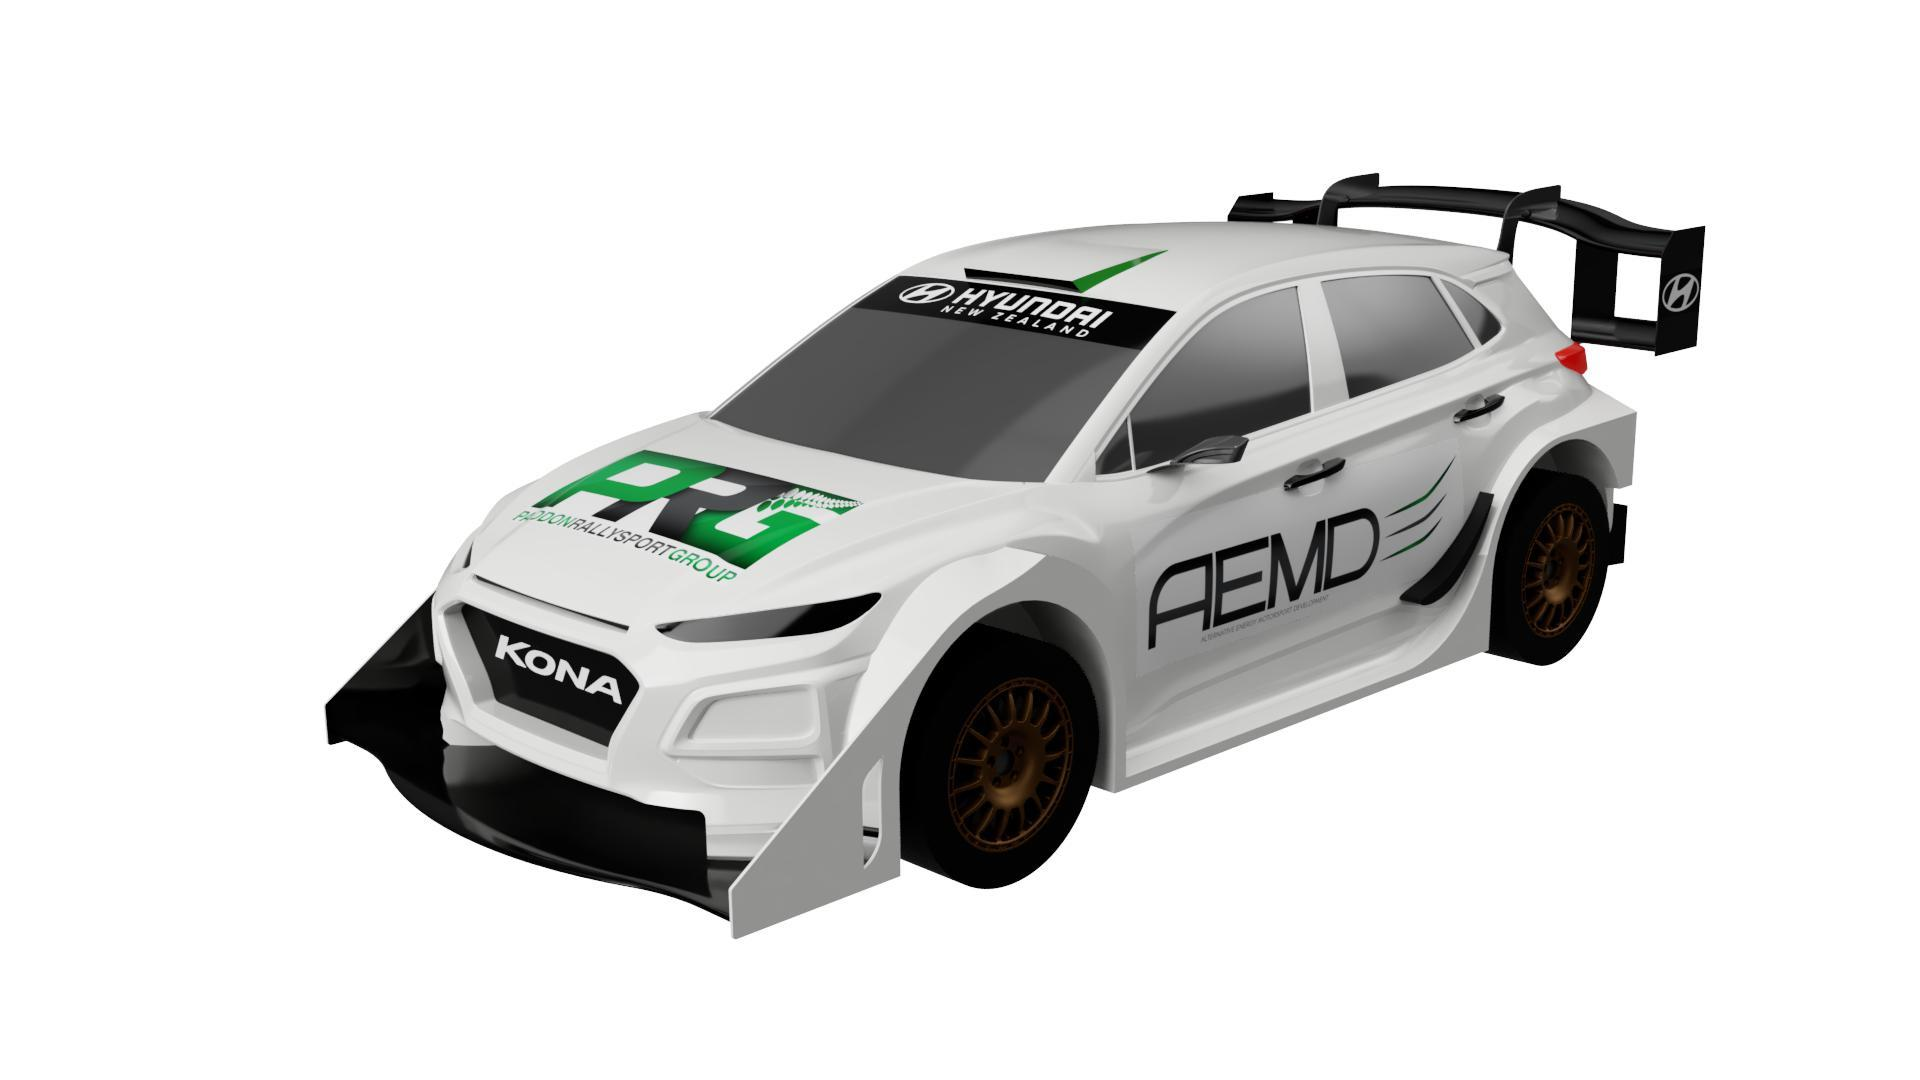 <h3>HYUNDAI KONA EV RALLY CAR</h3>